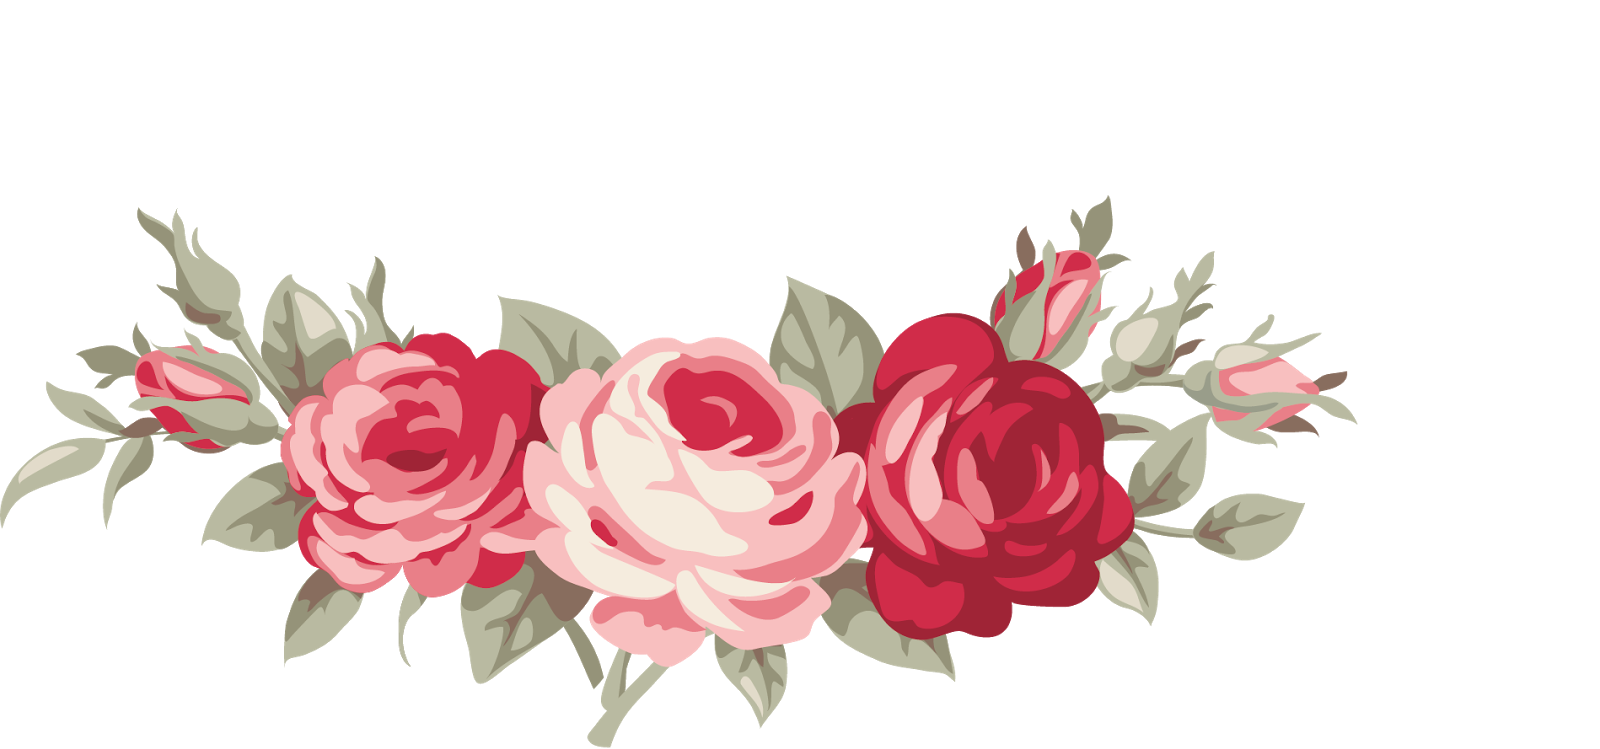 Popular Stickers further Flower further Flower Vine Drawing likewise Black Rose Vine 1 80830661 additionally Negro Silueta De La Flor Del Lirio Ilustracion Del Vector 57863268. on tumblr transparent flowers rose